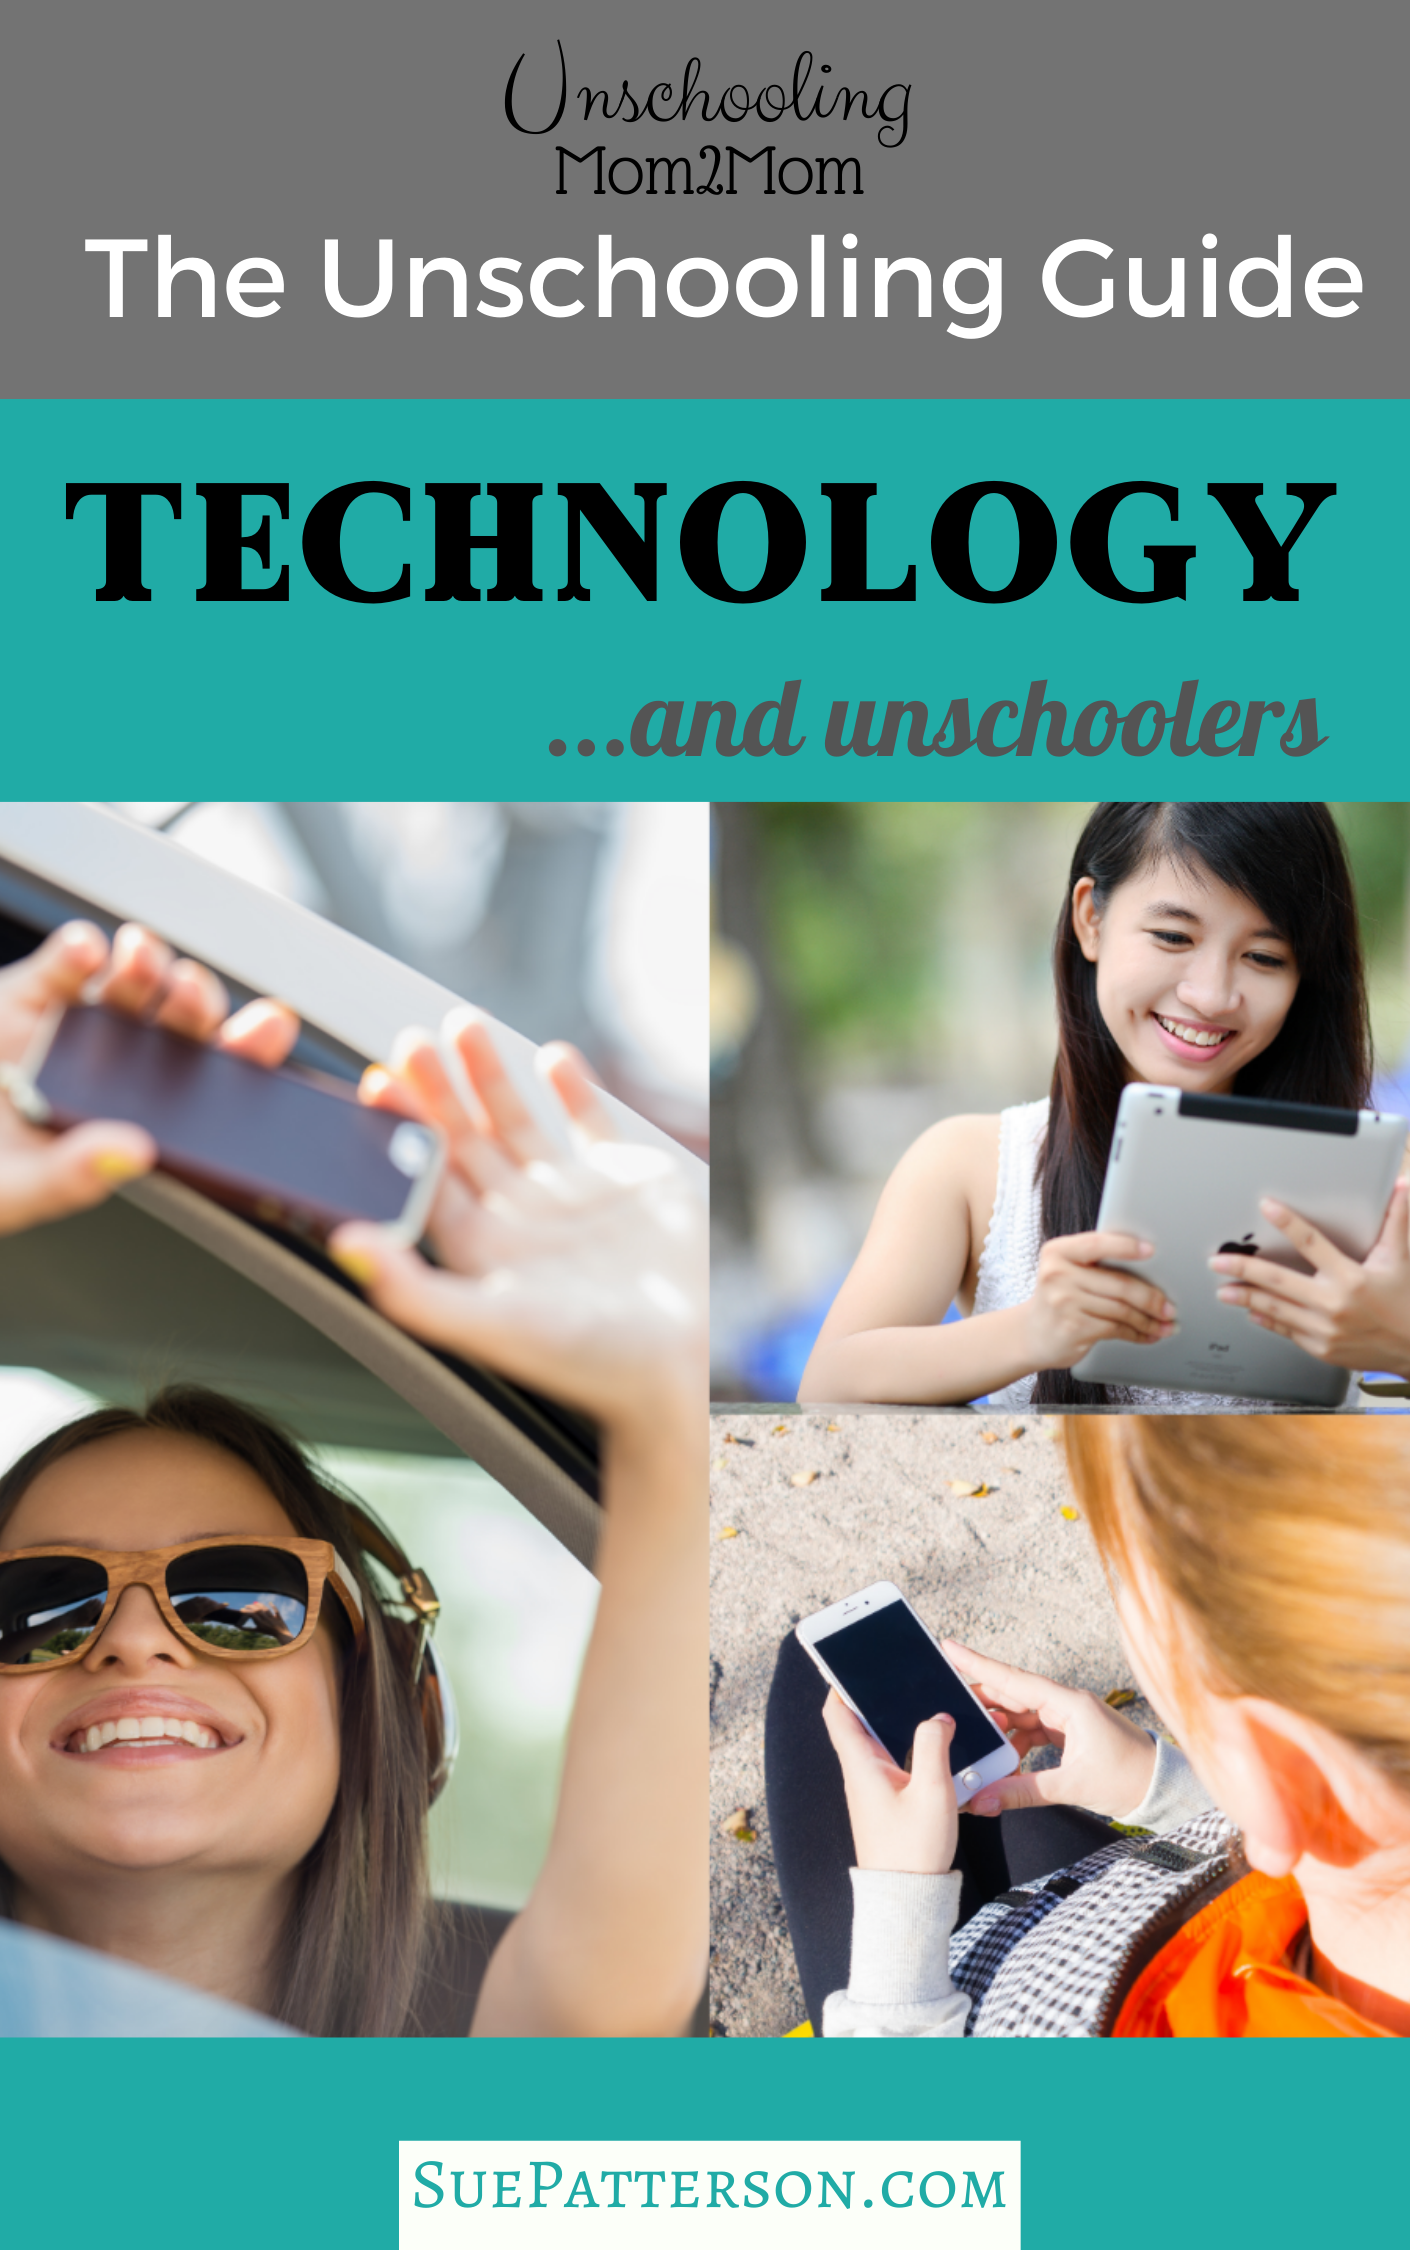 Technology & Unschoolers